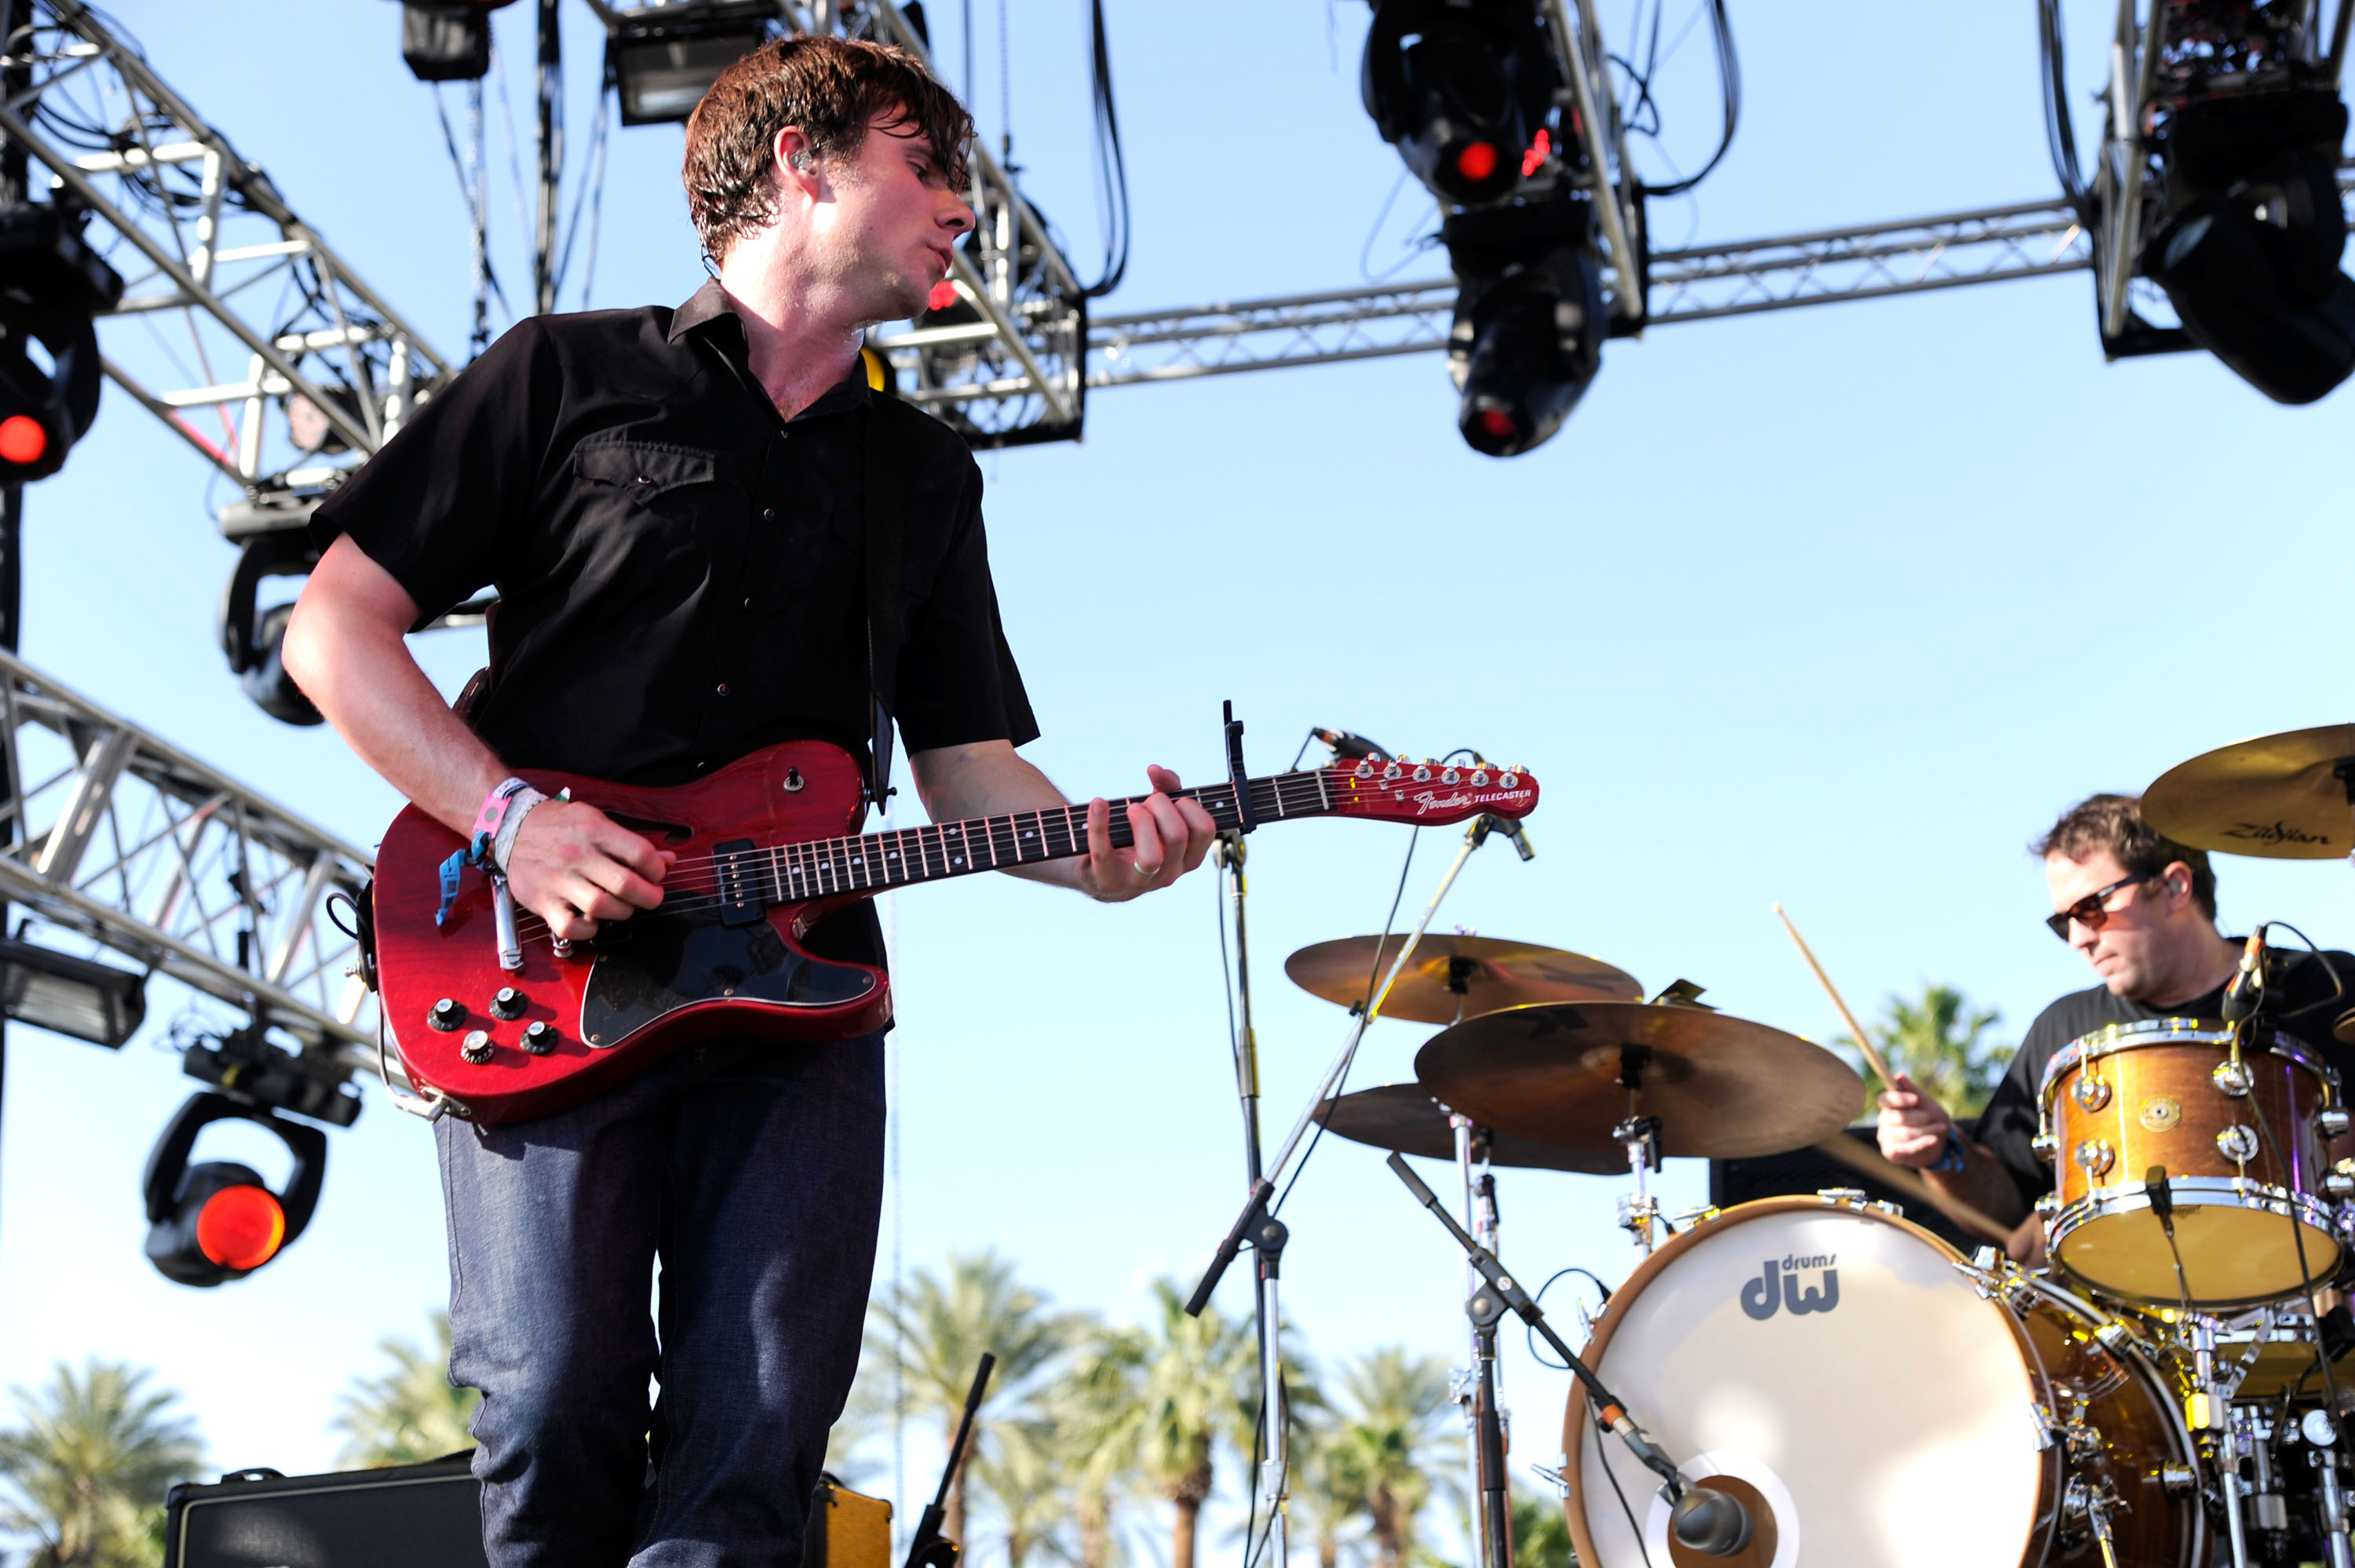 INDIO, CA - APRIL 17: Musician Jim Adkins of Jimmy Eat World performs during Day 3 of the Coachella Valley Music & Arts Festival 2011 held at the Empire Polo Club on April 17, 2011 in Indio, California. (Photo by Karl Walter/Getty Images)